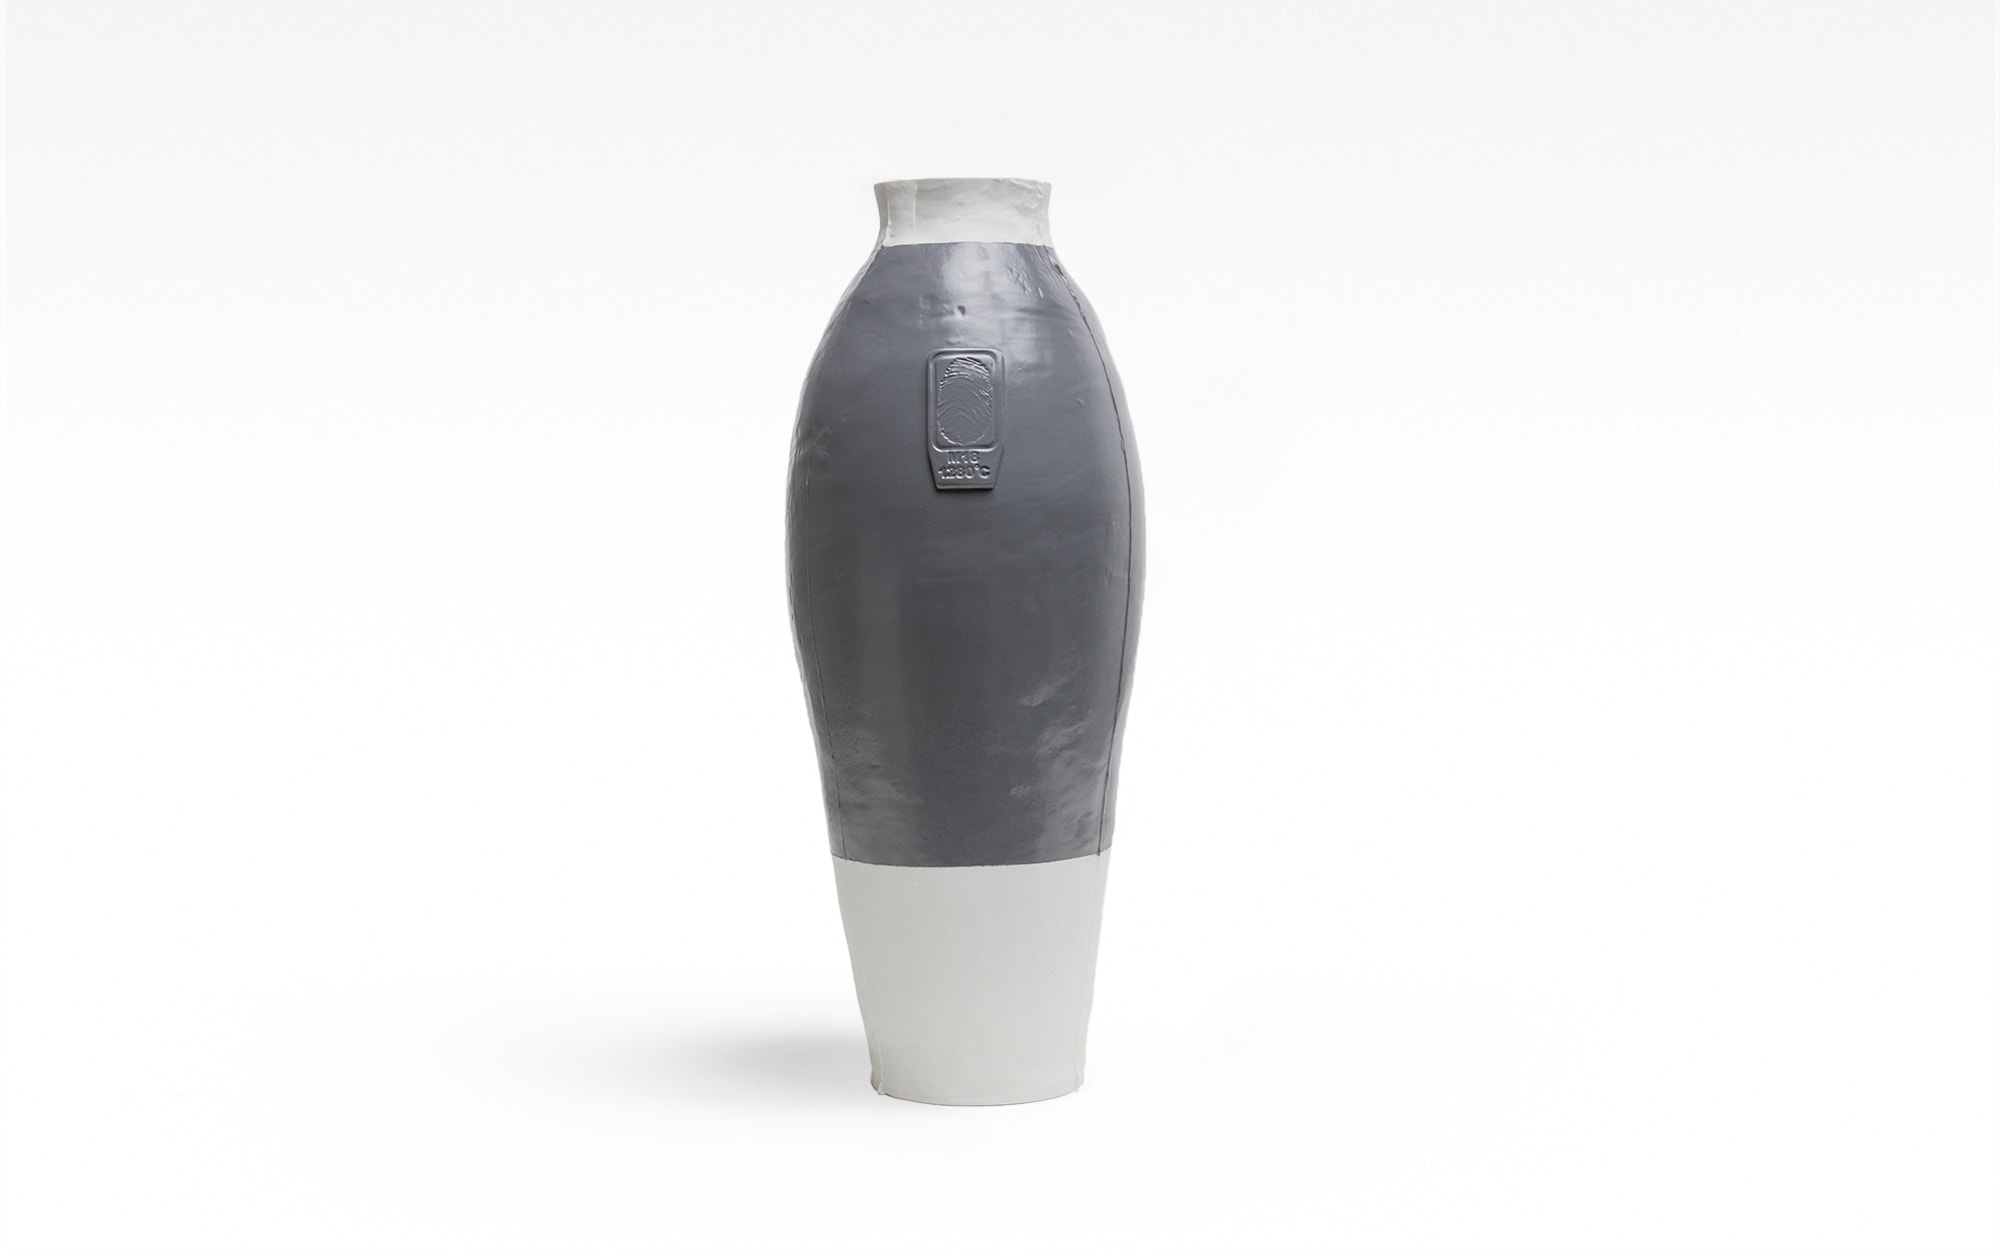 Hella Jongerius Colored vases RAL 7015 (SLATE GREY)